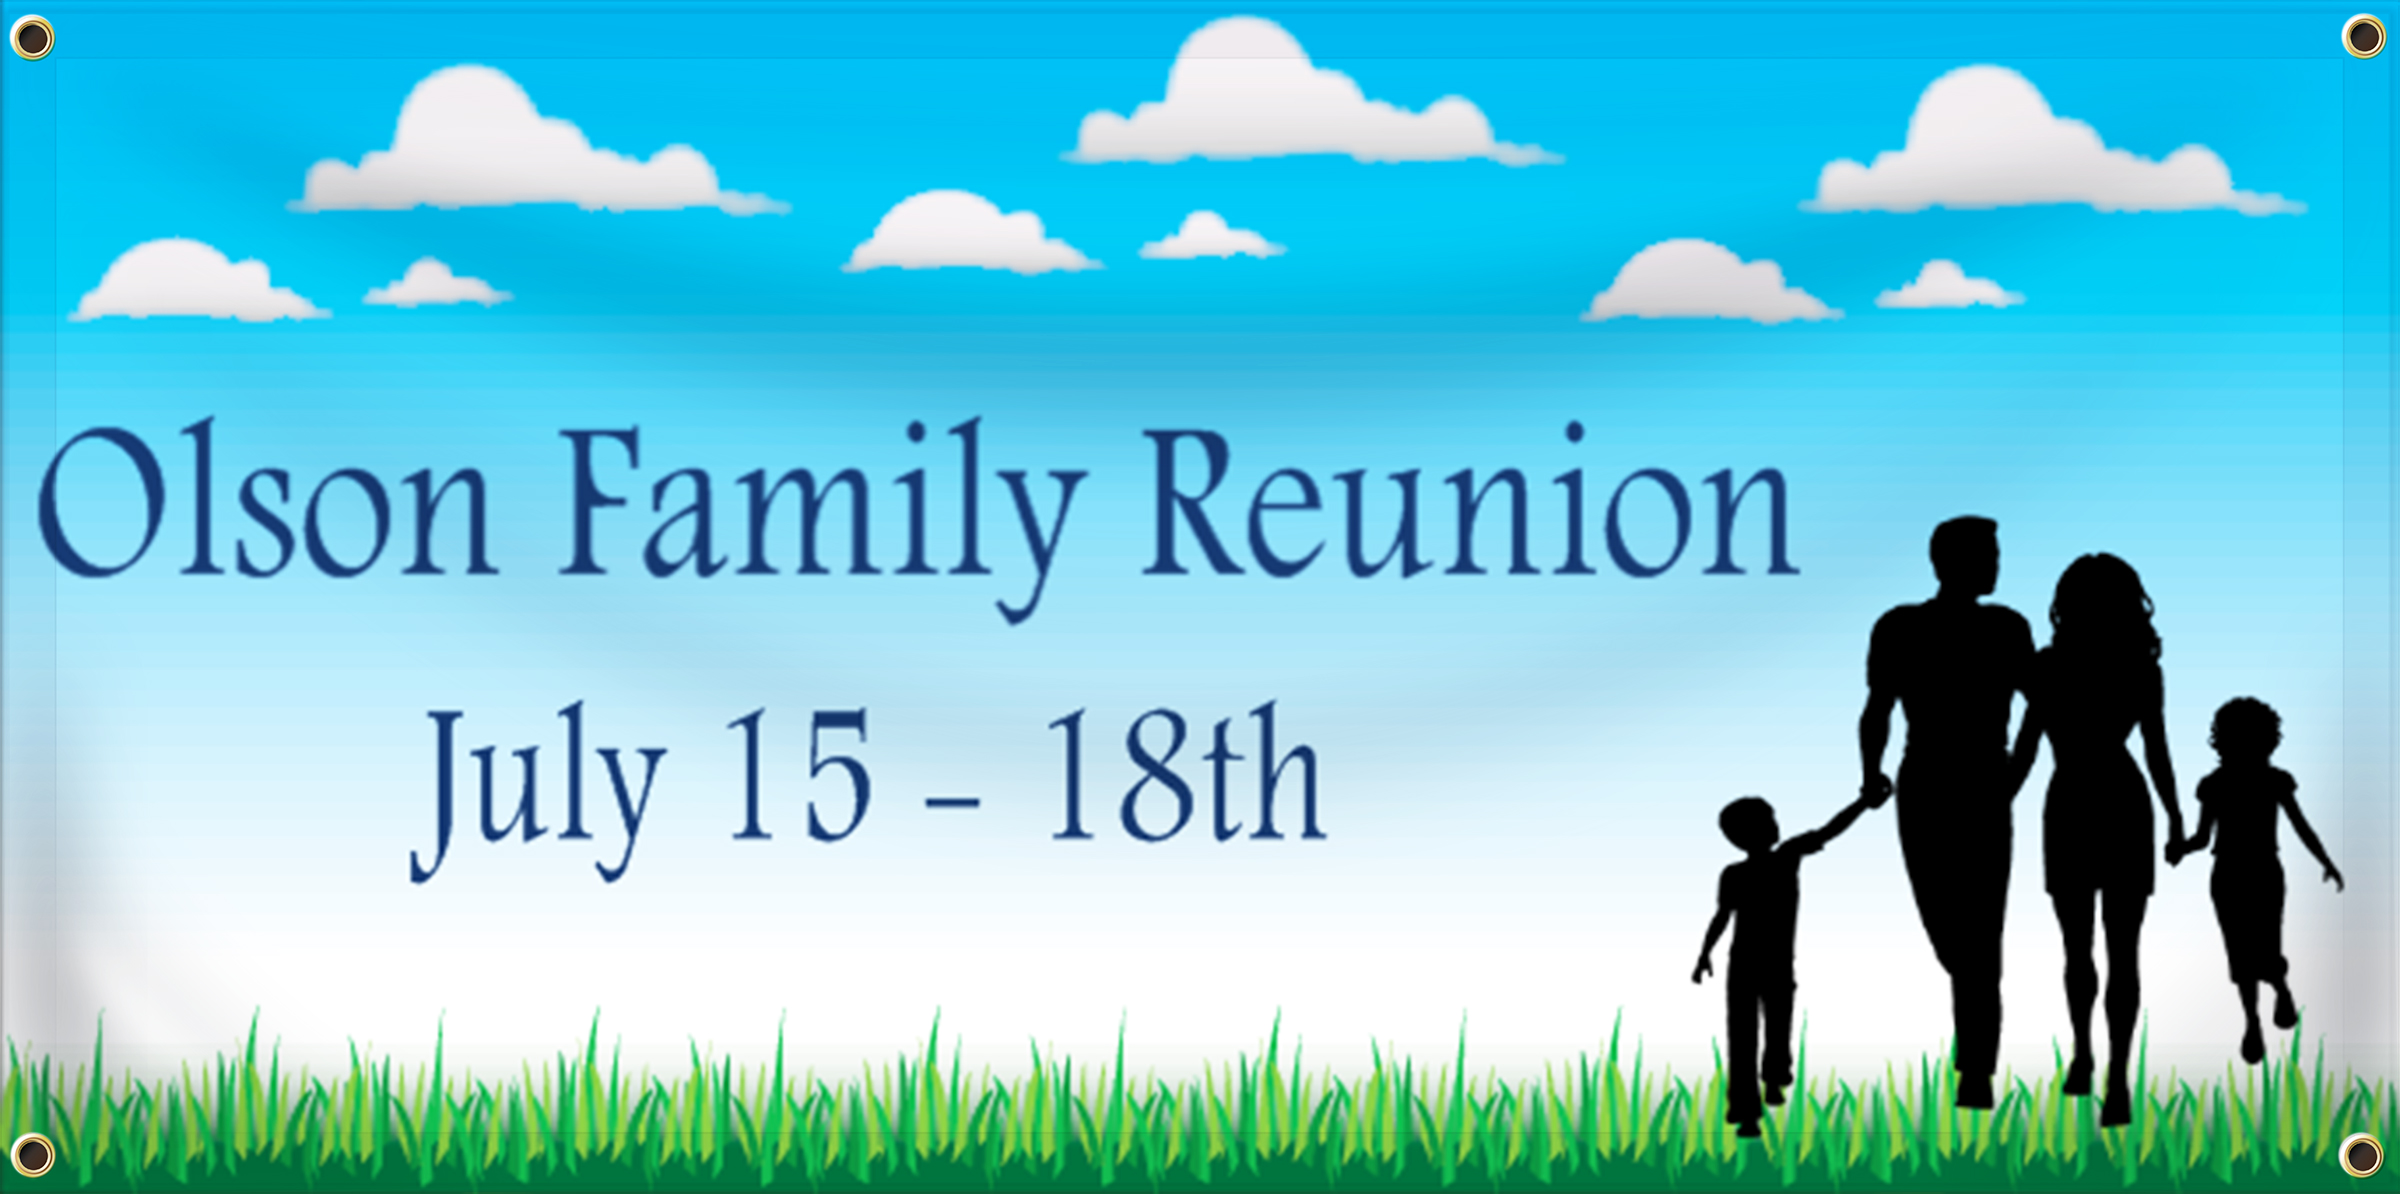 Family Reunion Banner Ideas | LawnSigns.com